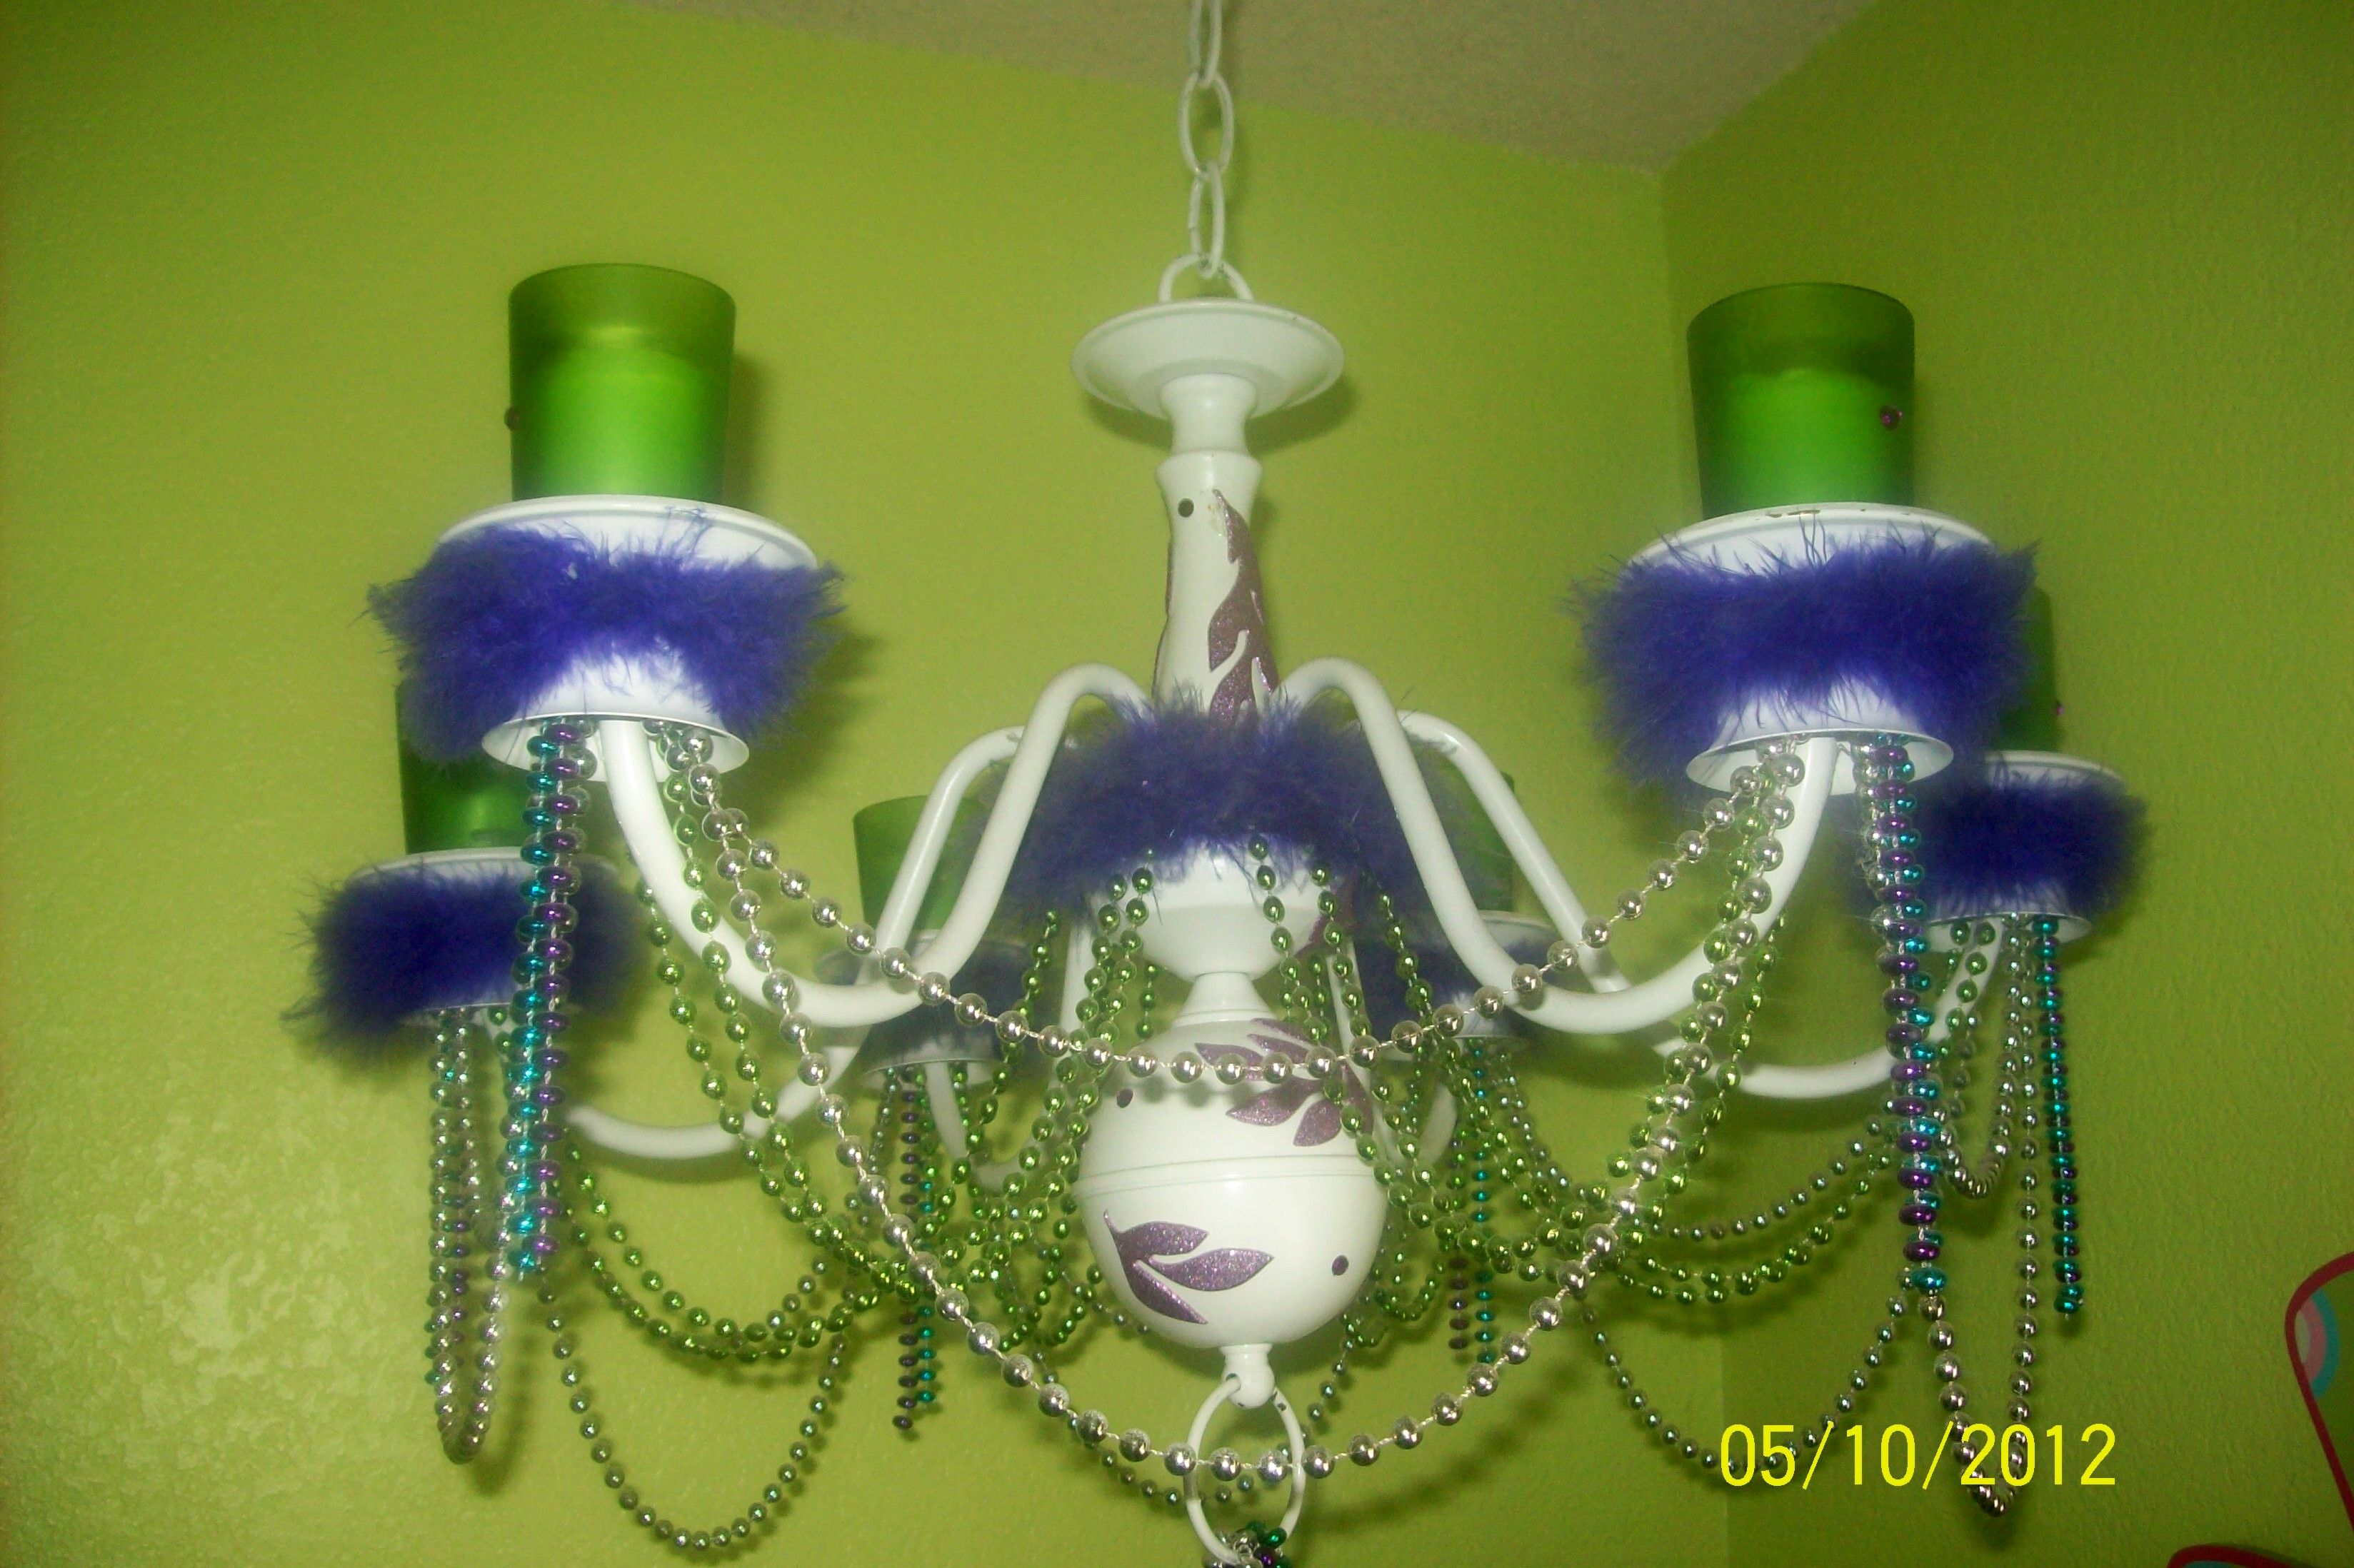 I made this for my daughters room out of an old light fixture.